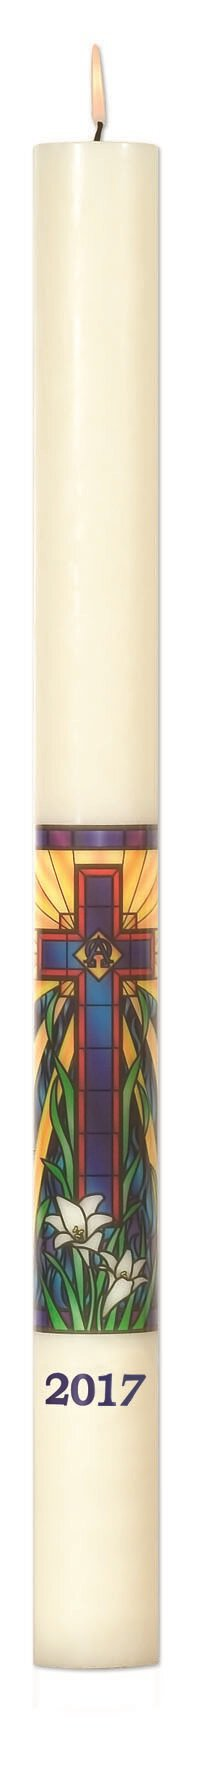 No 8 Radiant Light Mosaic Paschal Candle